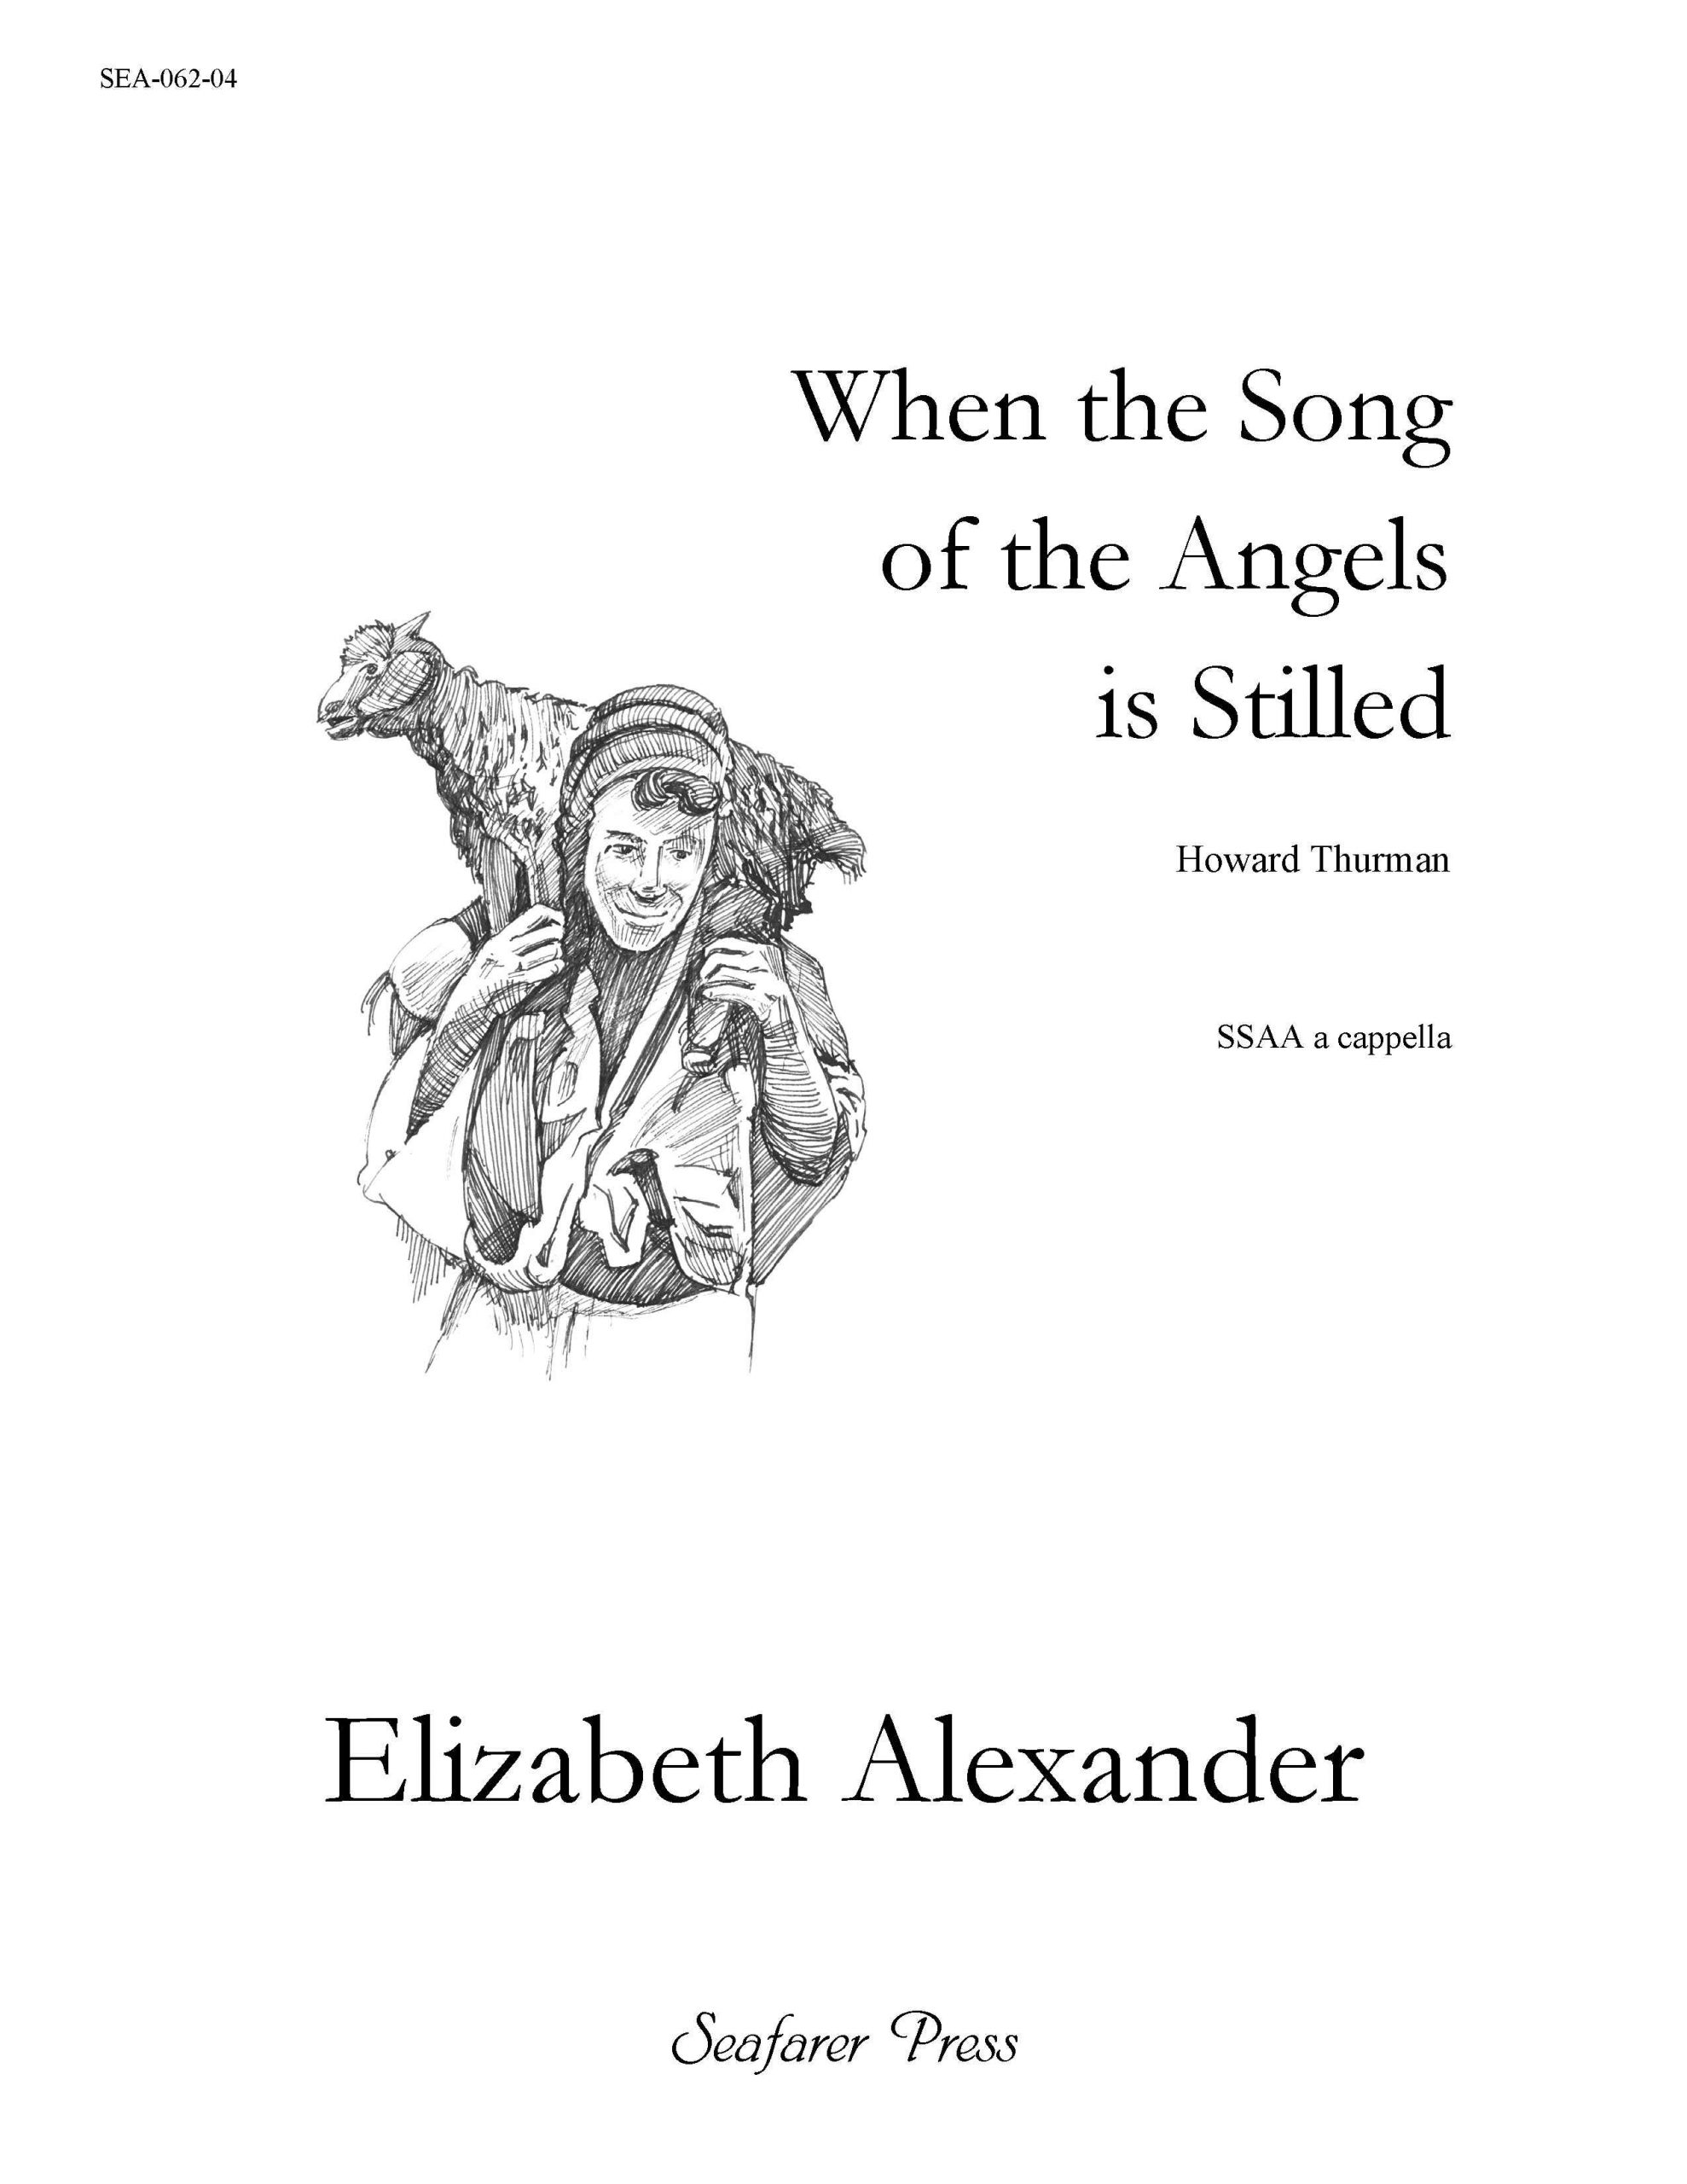 SEA-062-04 - When the Song of the Angels Is Stilled